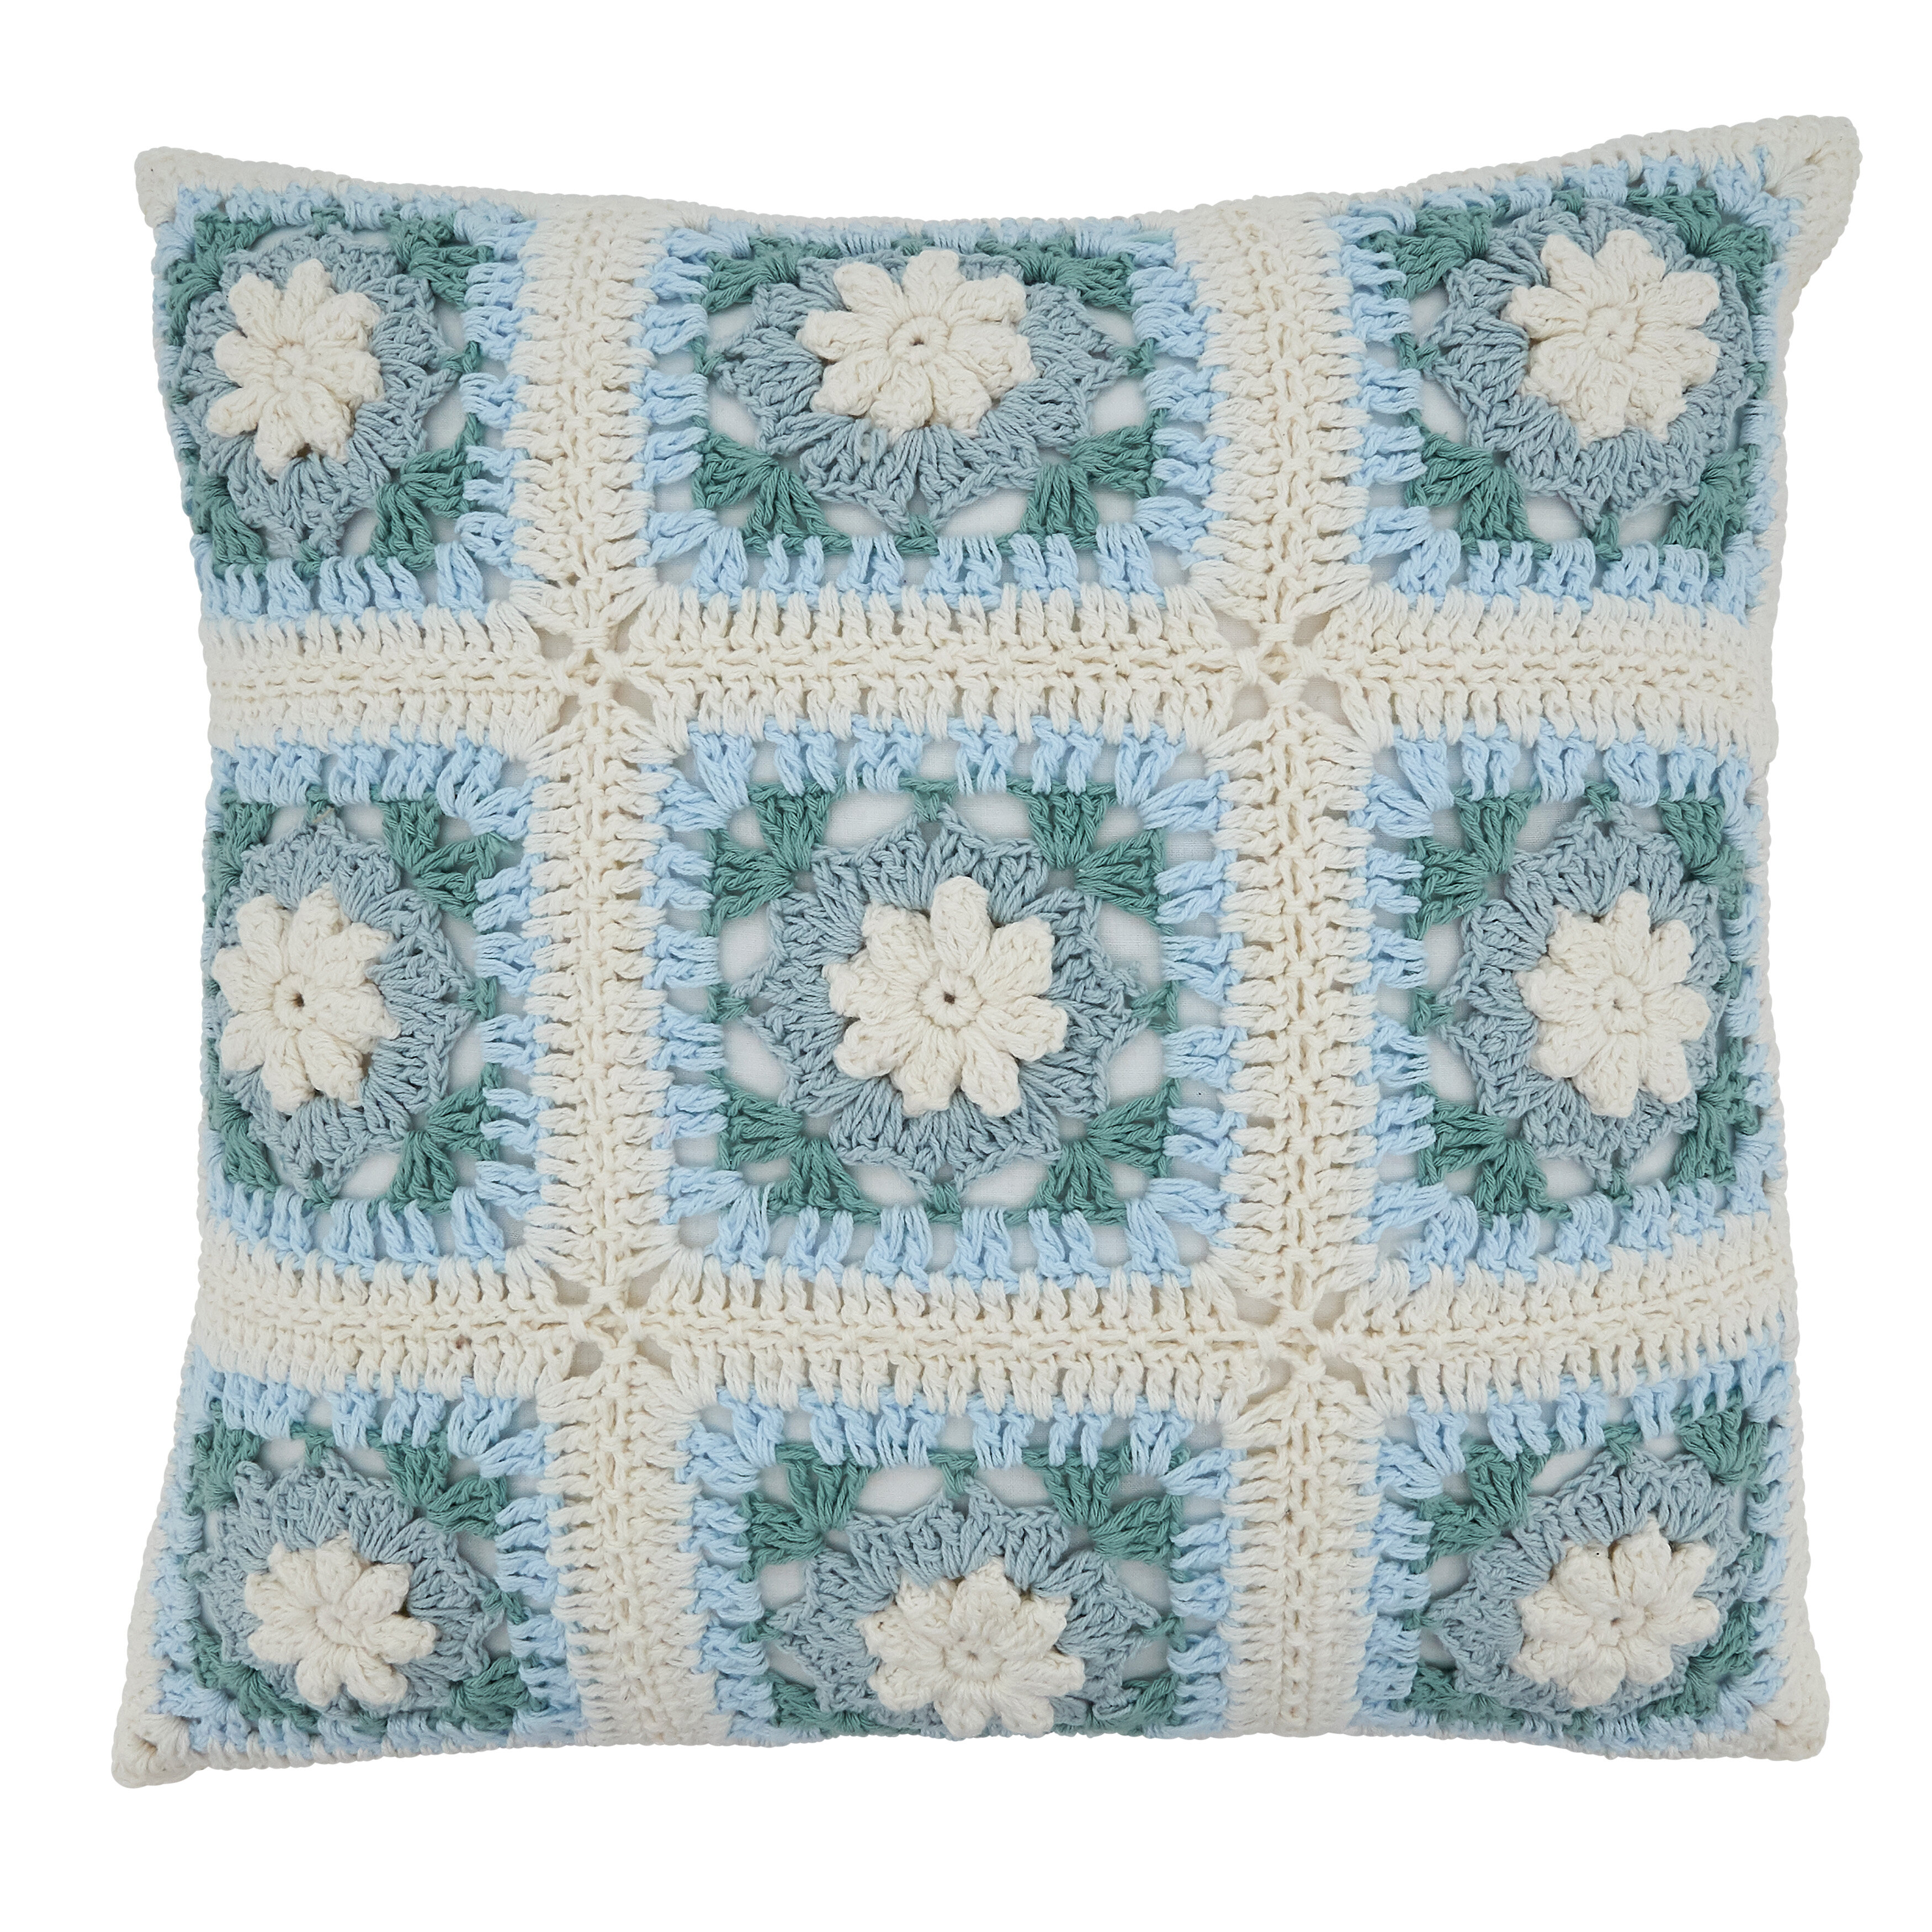 Bungalow Rose Fearne Cotton Geometric 16 Throw Pillow Cover Wayfair